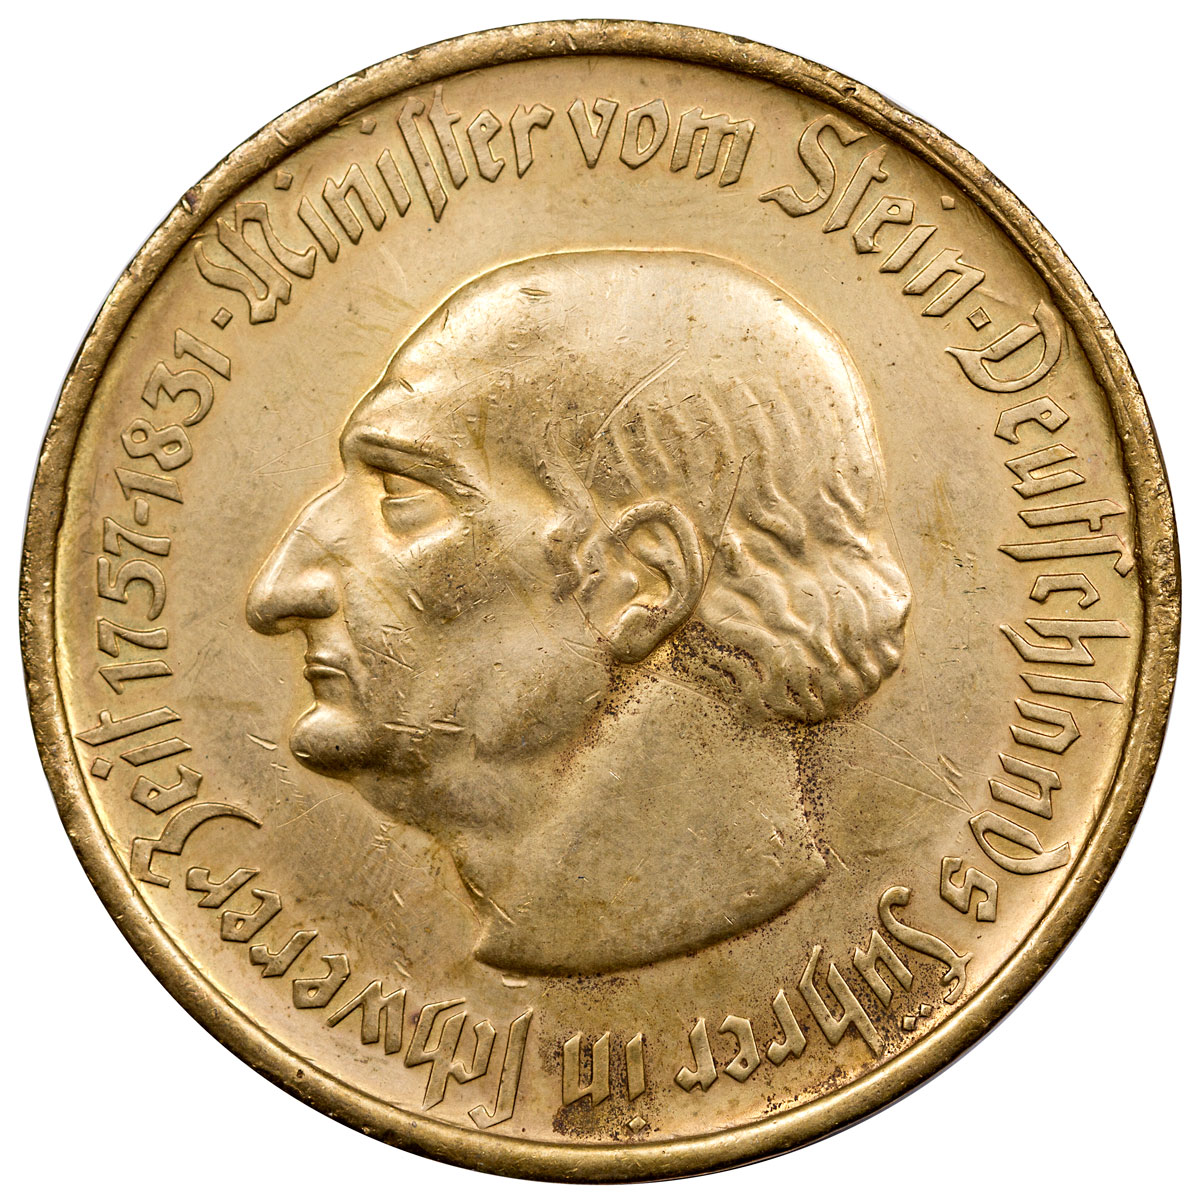 Germany, Weimar Republic 1923 10,000 Mark Notgeld Coin